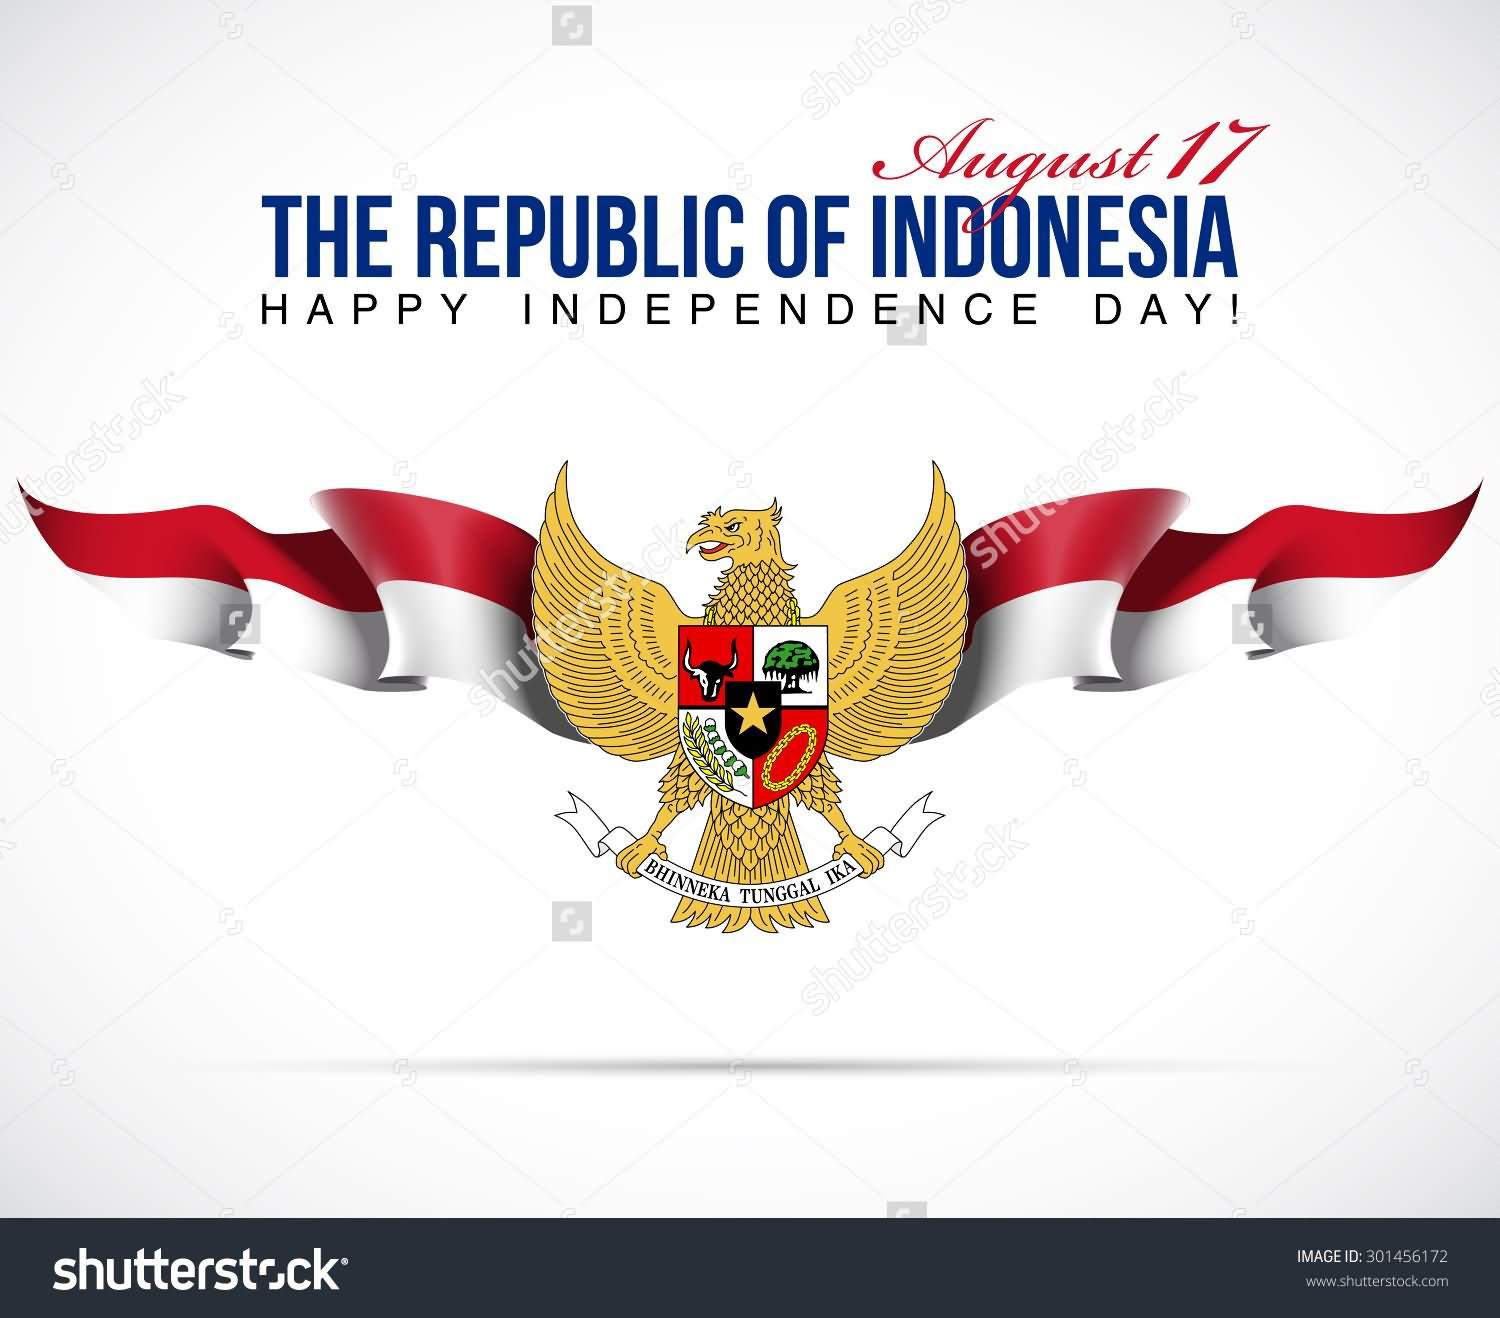 Indonesia independence day clipart picture royalty free Indonesia Independence Day - Askideas.com picture royalty free